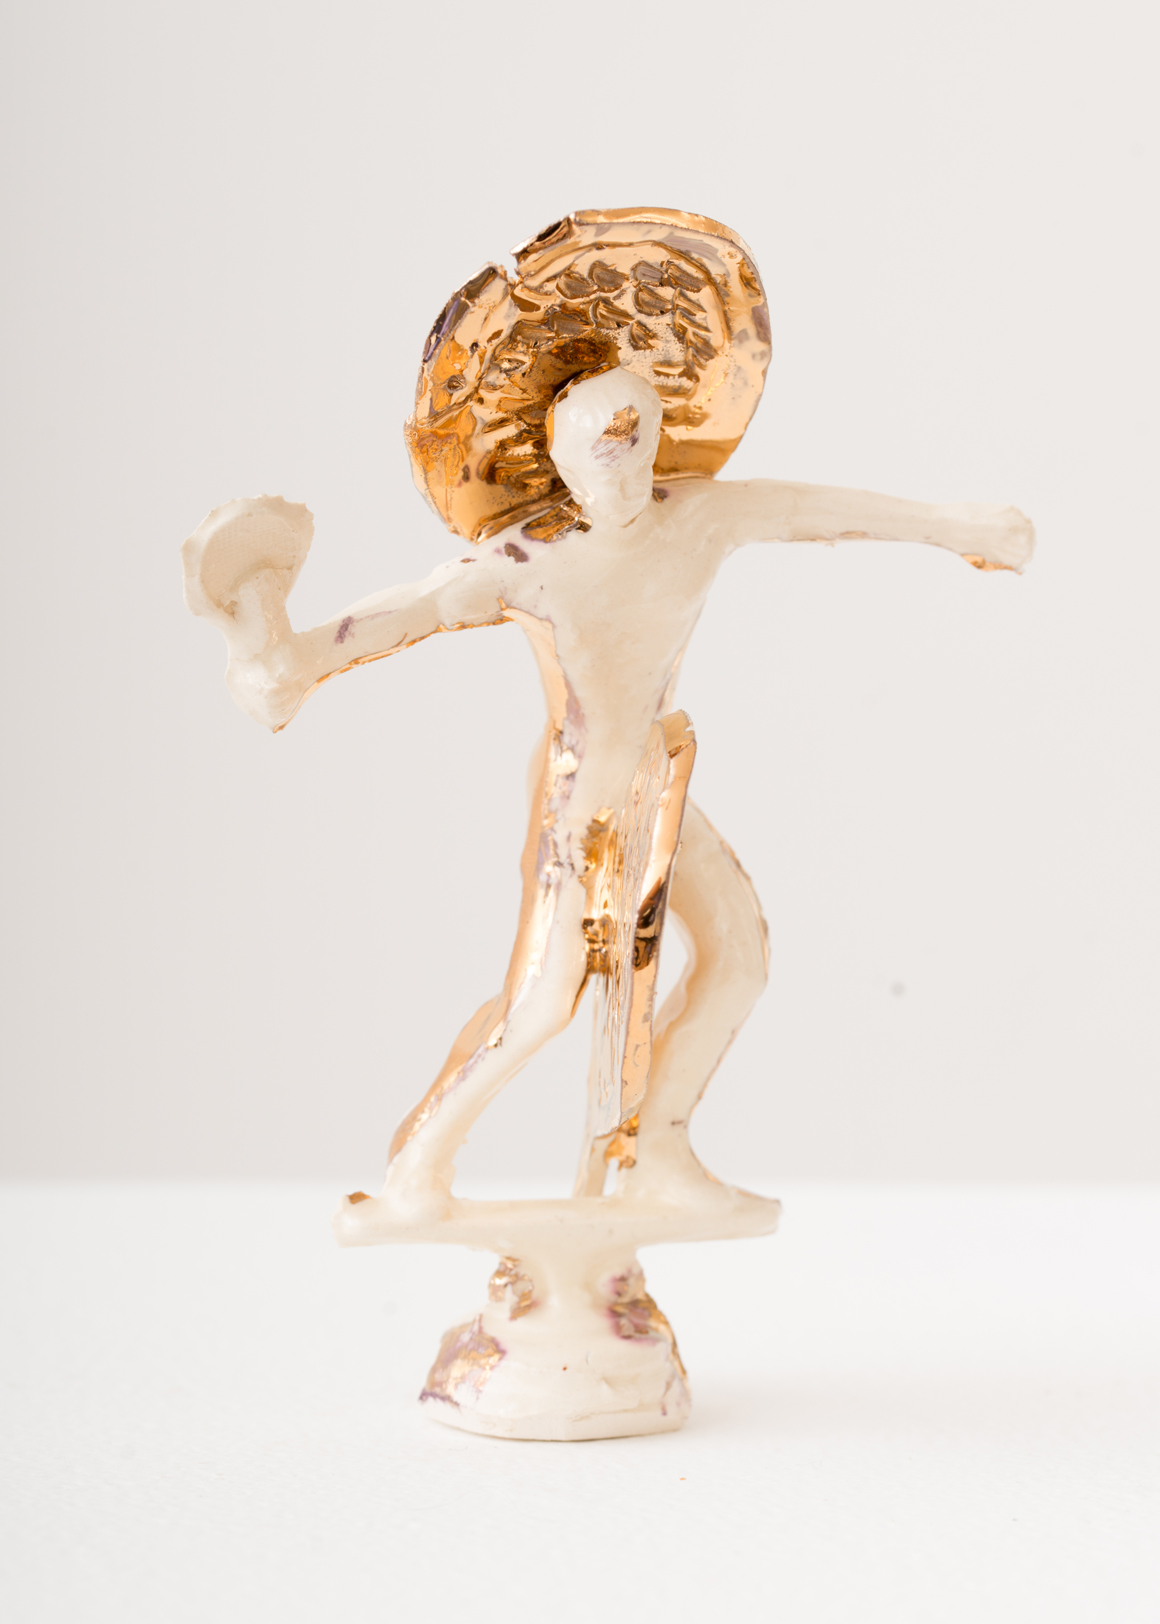 "<p><span class=""name"">Stephanie Kantor</span><br><em>Clay Surfer 12</em><span class='media'>earthenware, glaze, luster</span>5 x 2.5 x 2 in (12.7 x 6.4 x 5.1 cm)<br>2018<br><a class='inquire' href='mailto:info@gildargallery.com?subject=Artwork Inquiry SKAN0031&body=I am interested in finding out more about Clay Surfer 12 by Stephanie Kantor'>Inquire</a></p>"